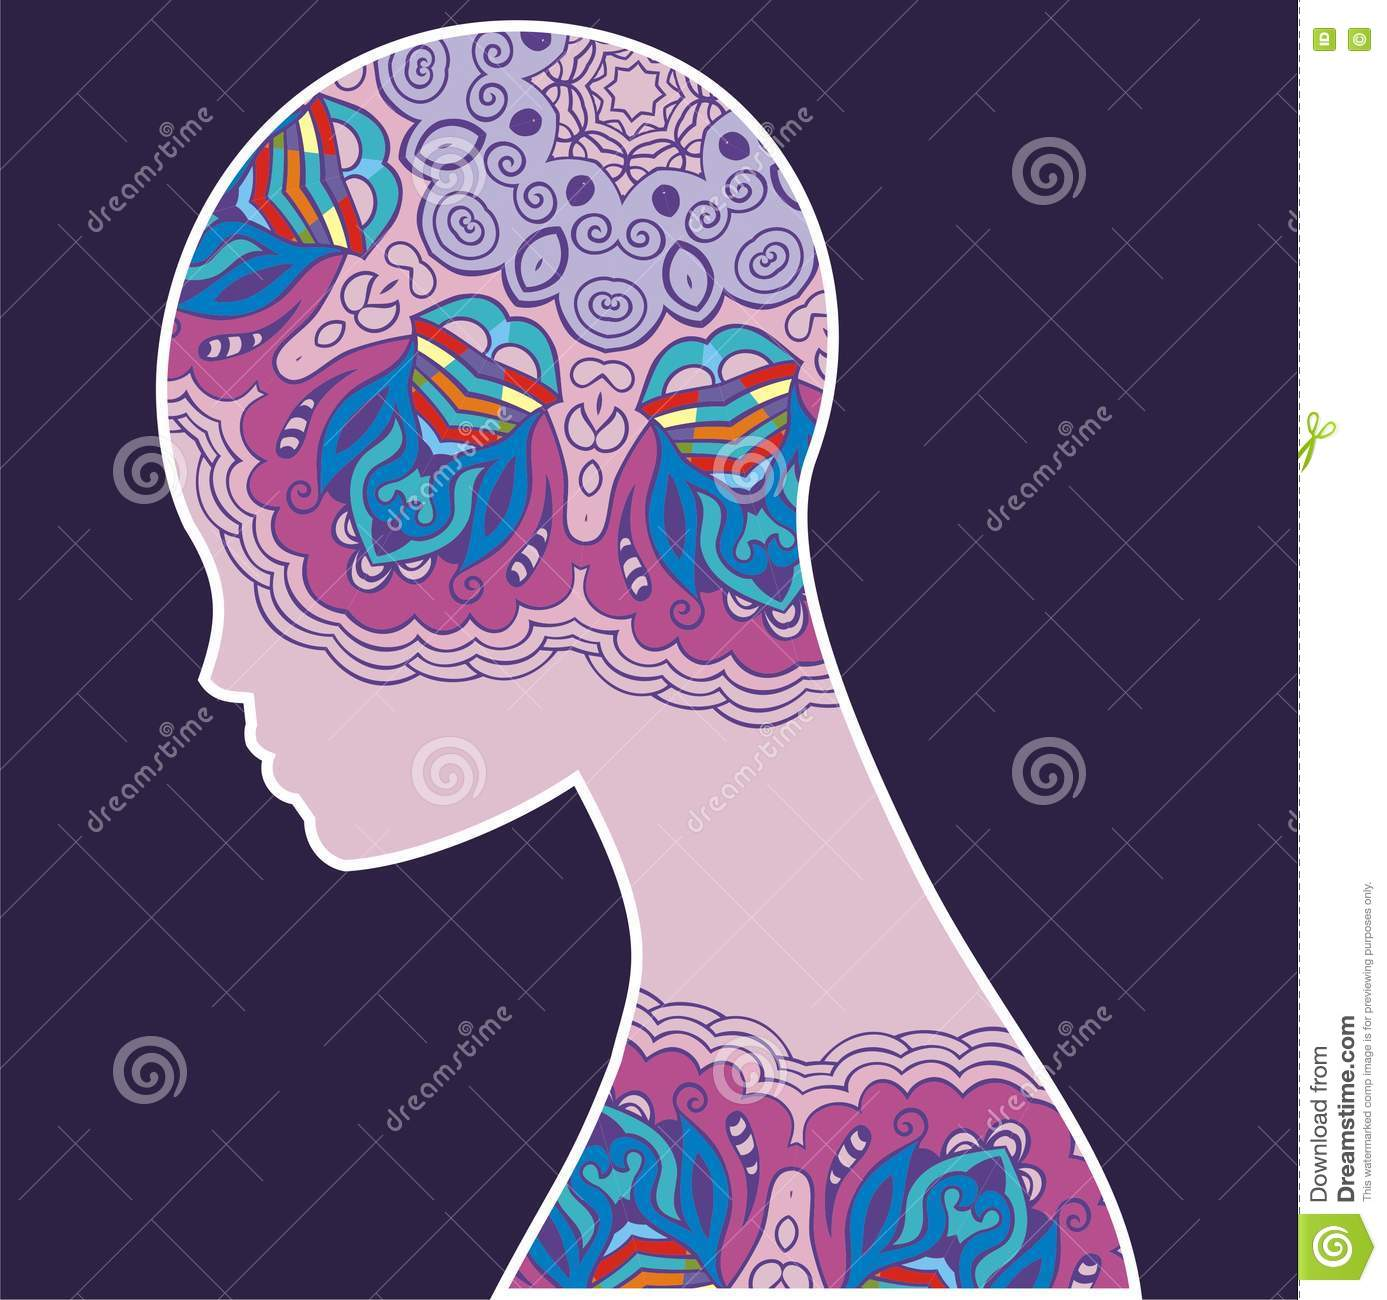 Abstract Silhouette Woman. Fantasy Image Of The Soul, Mind. Stock ...